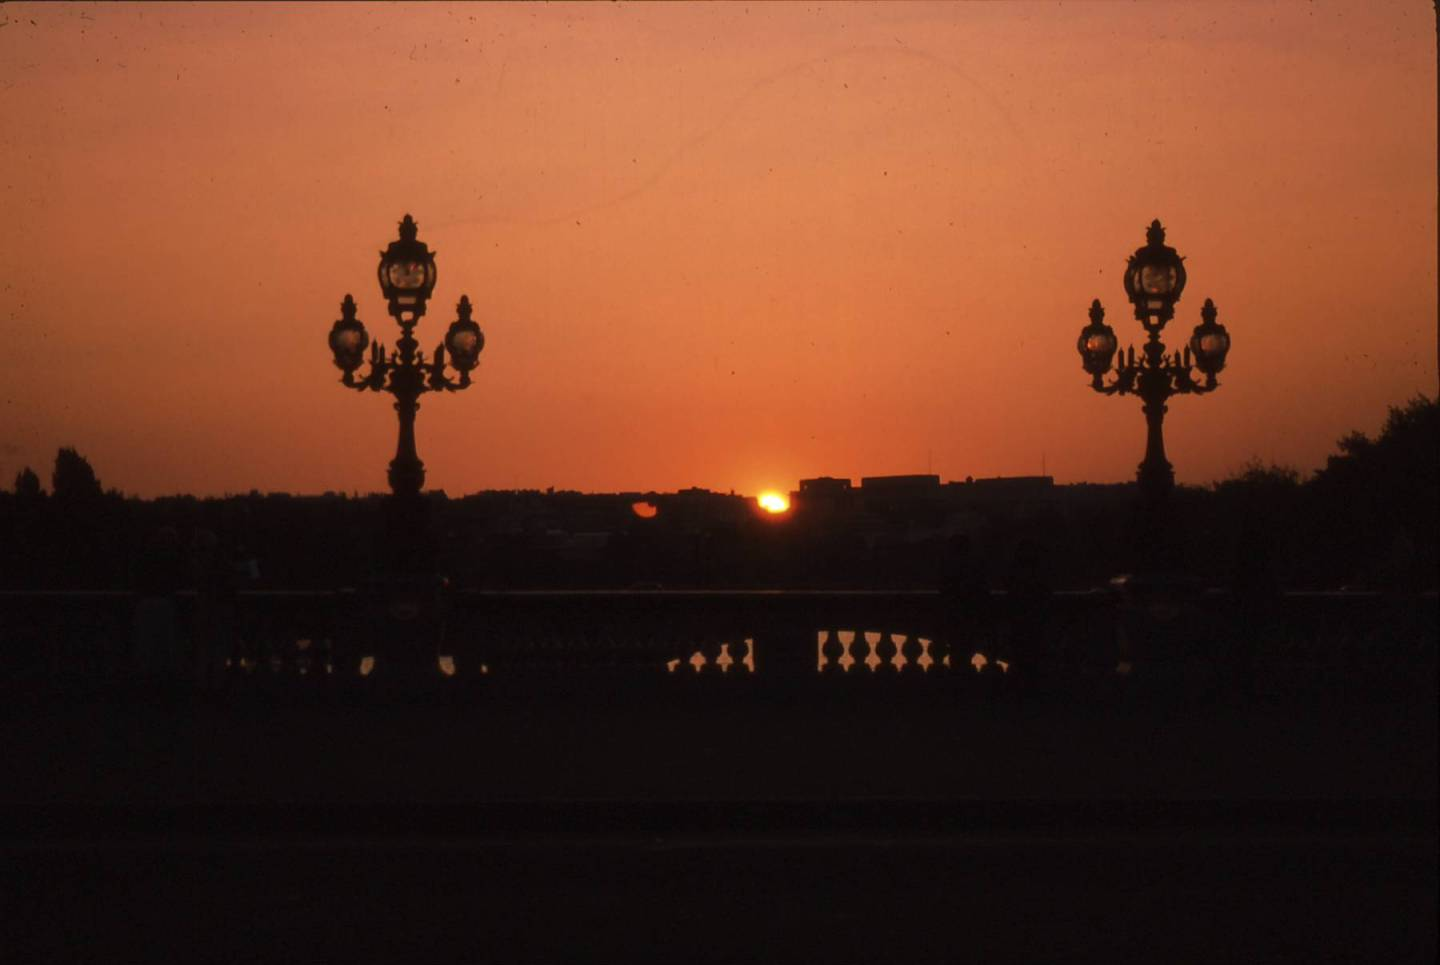 Paris; Love, Beauty, Inspiration, Joie de Vivre, Will never be beaten down.